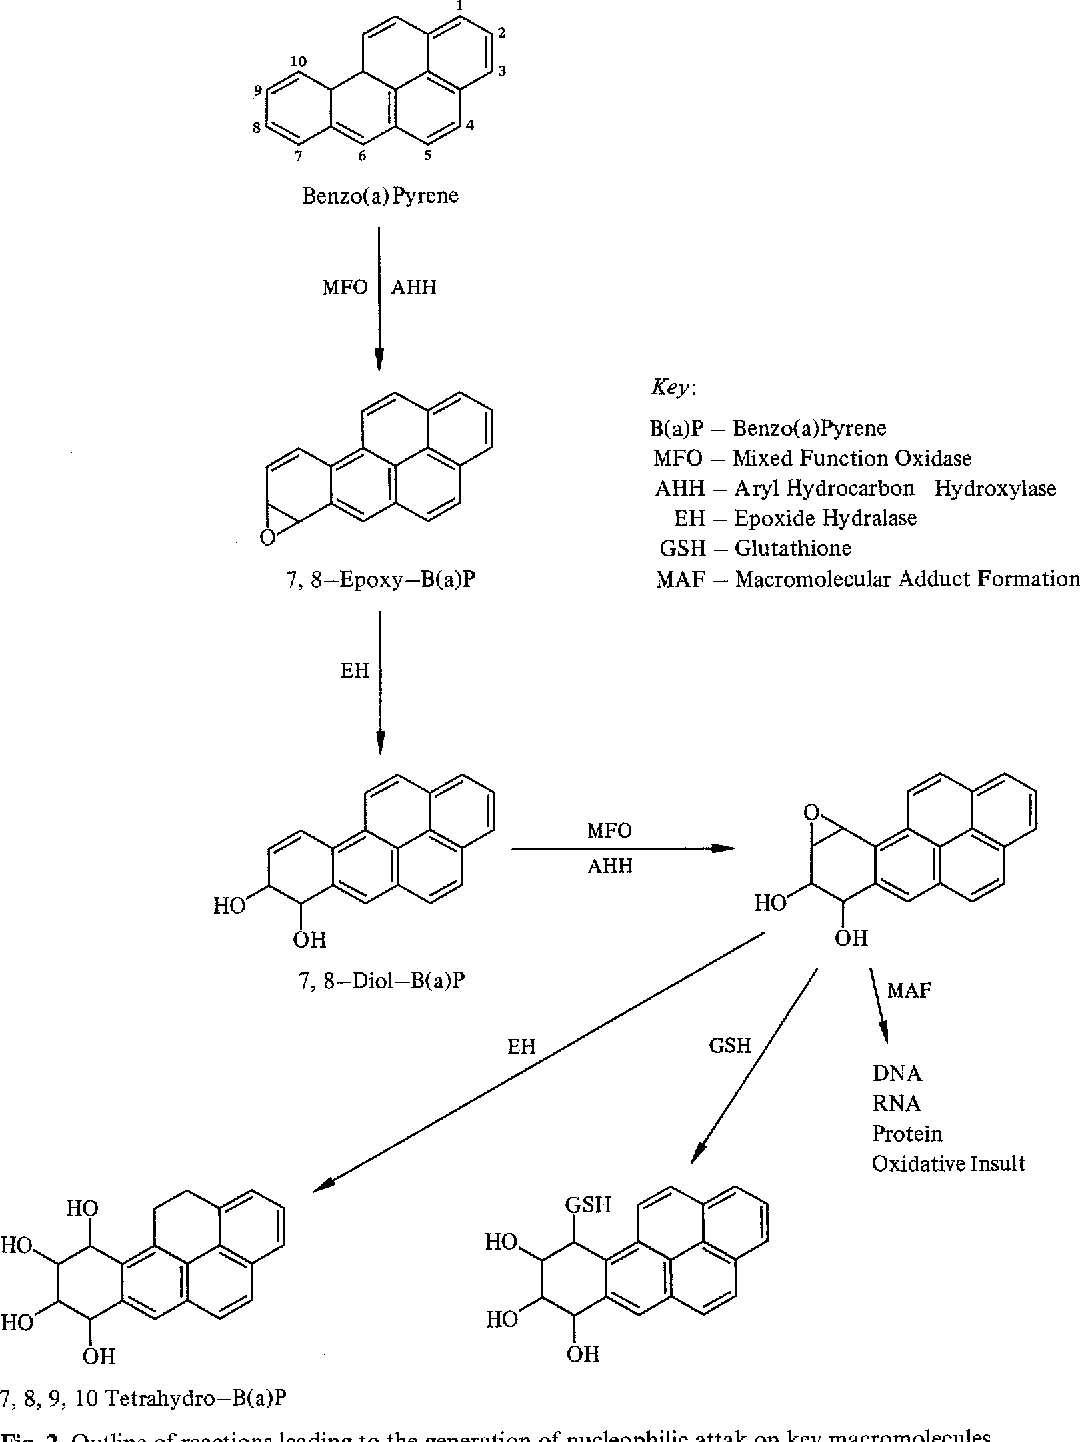 Fig. 2. Outline of reactions leading to the generation of nucleophilic attak on key macromolecules